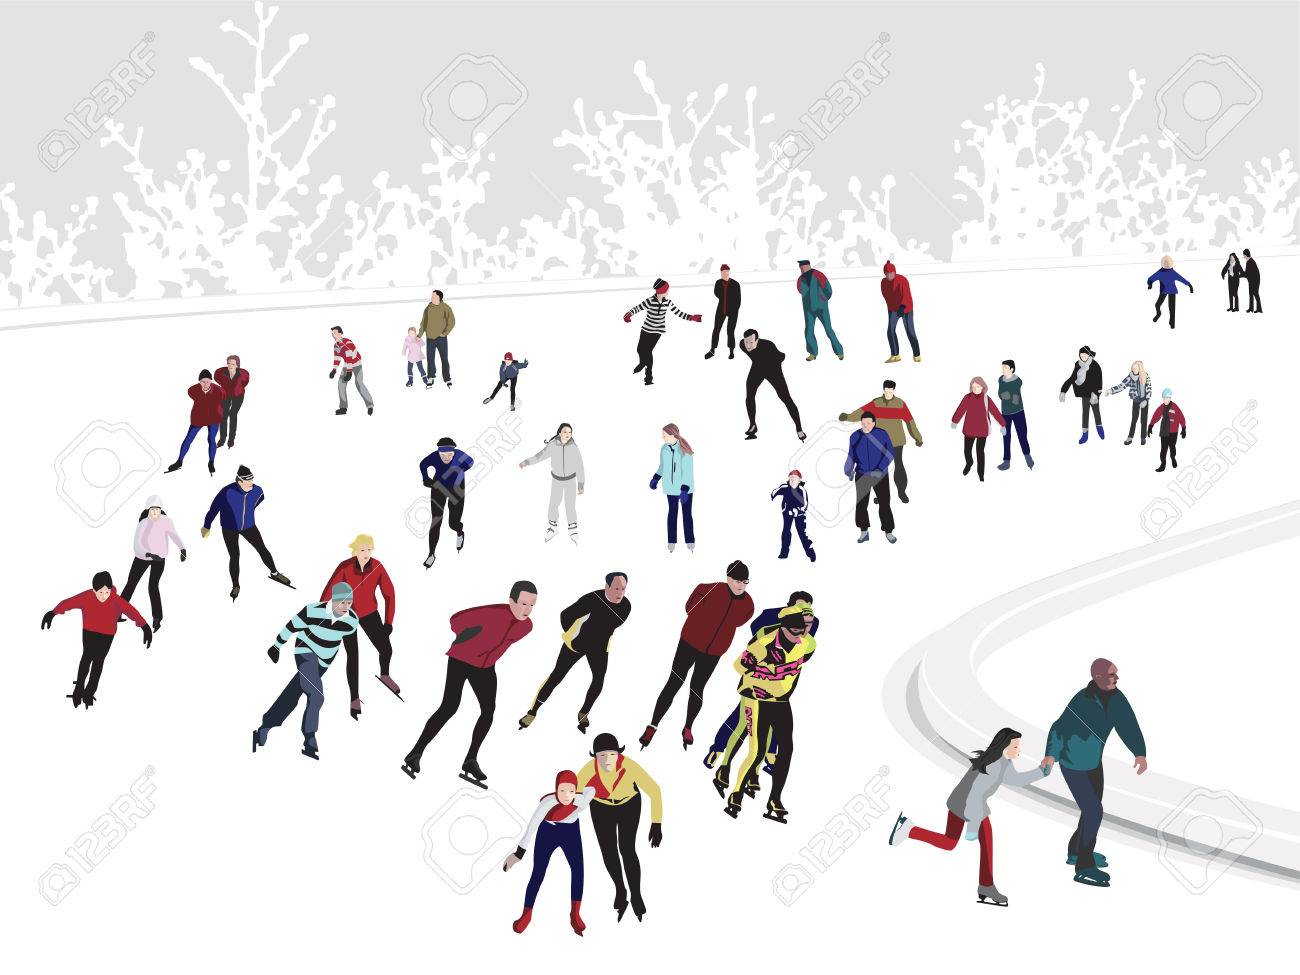 Ice Skating Rink Stock Vector - 11151580